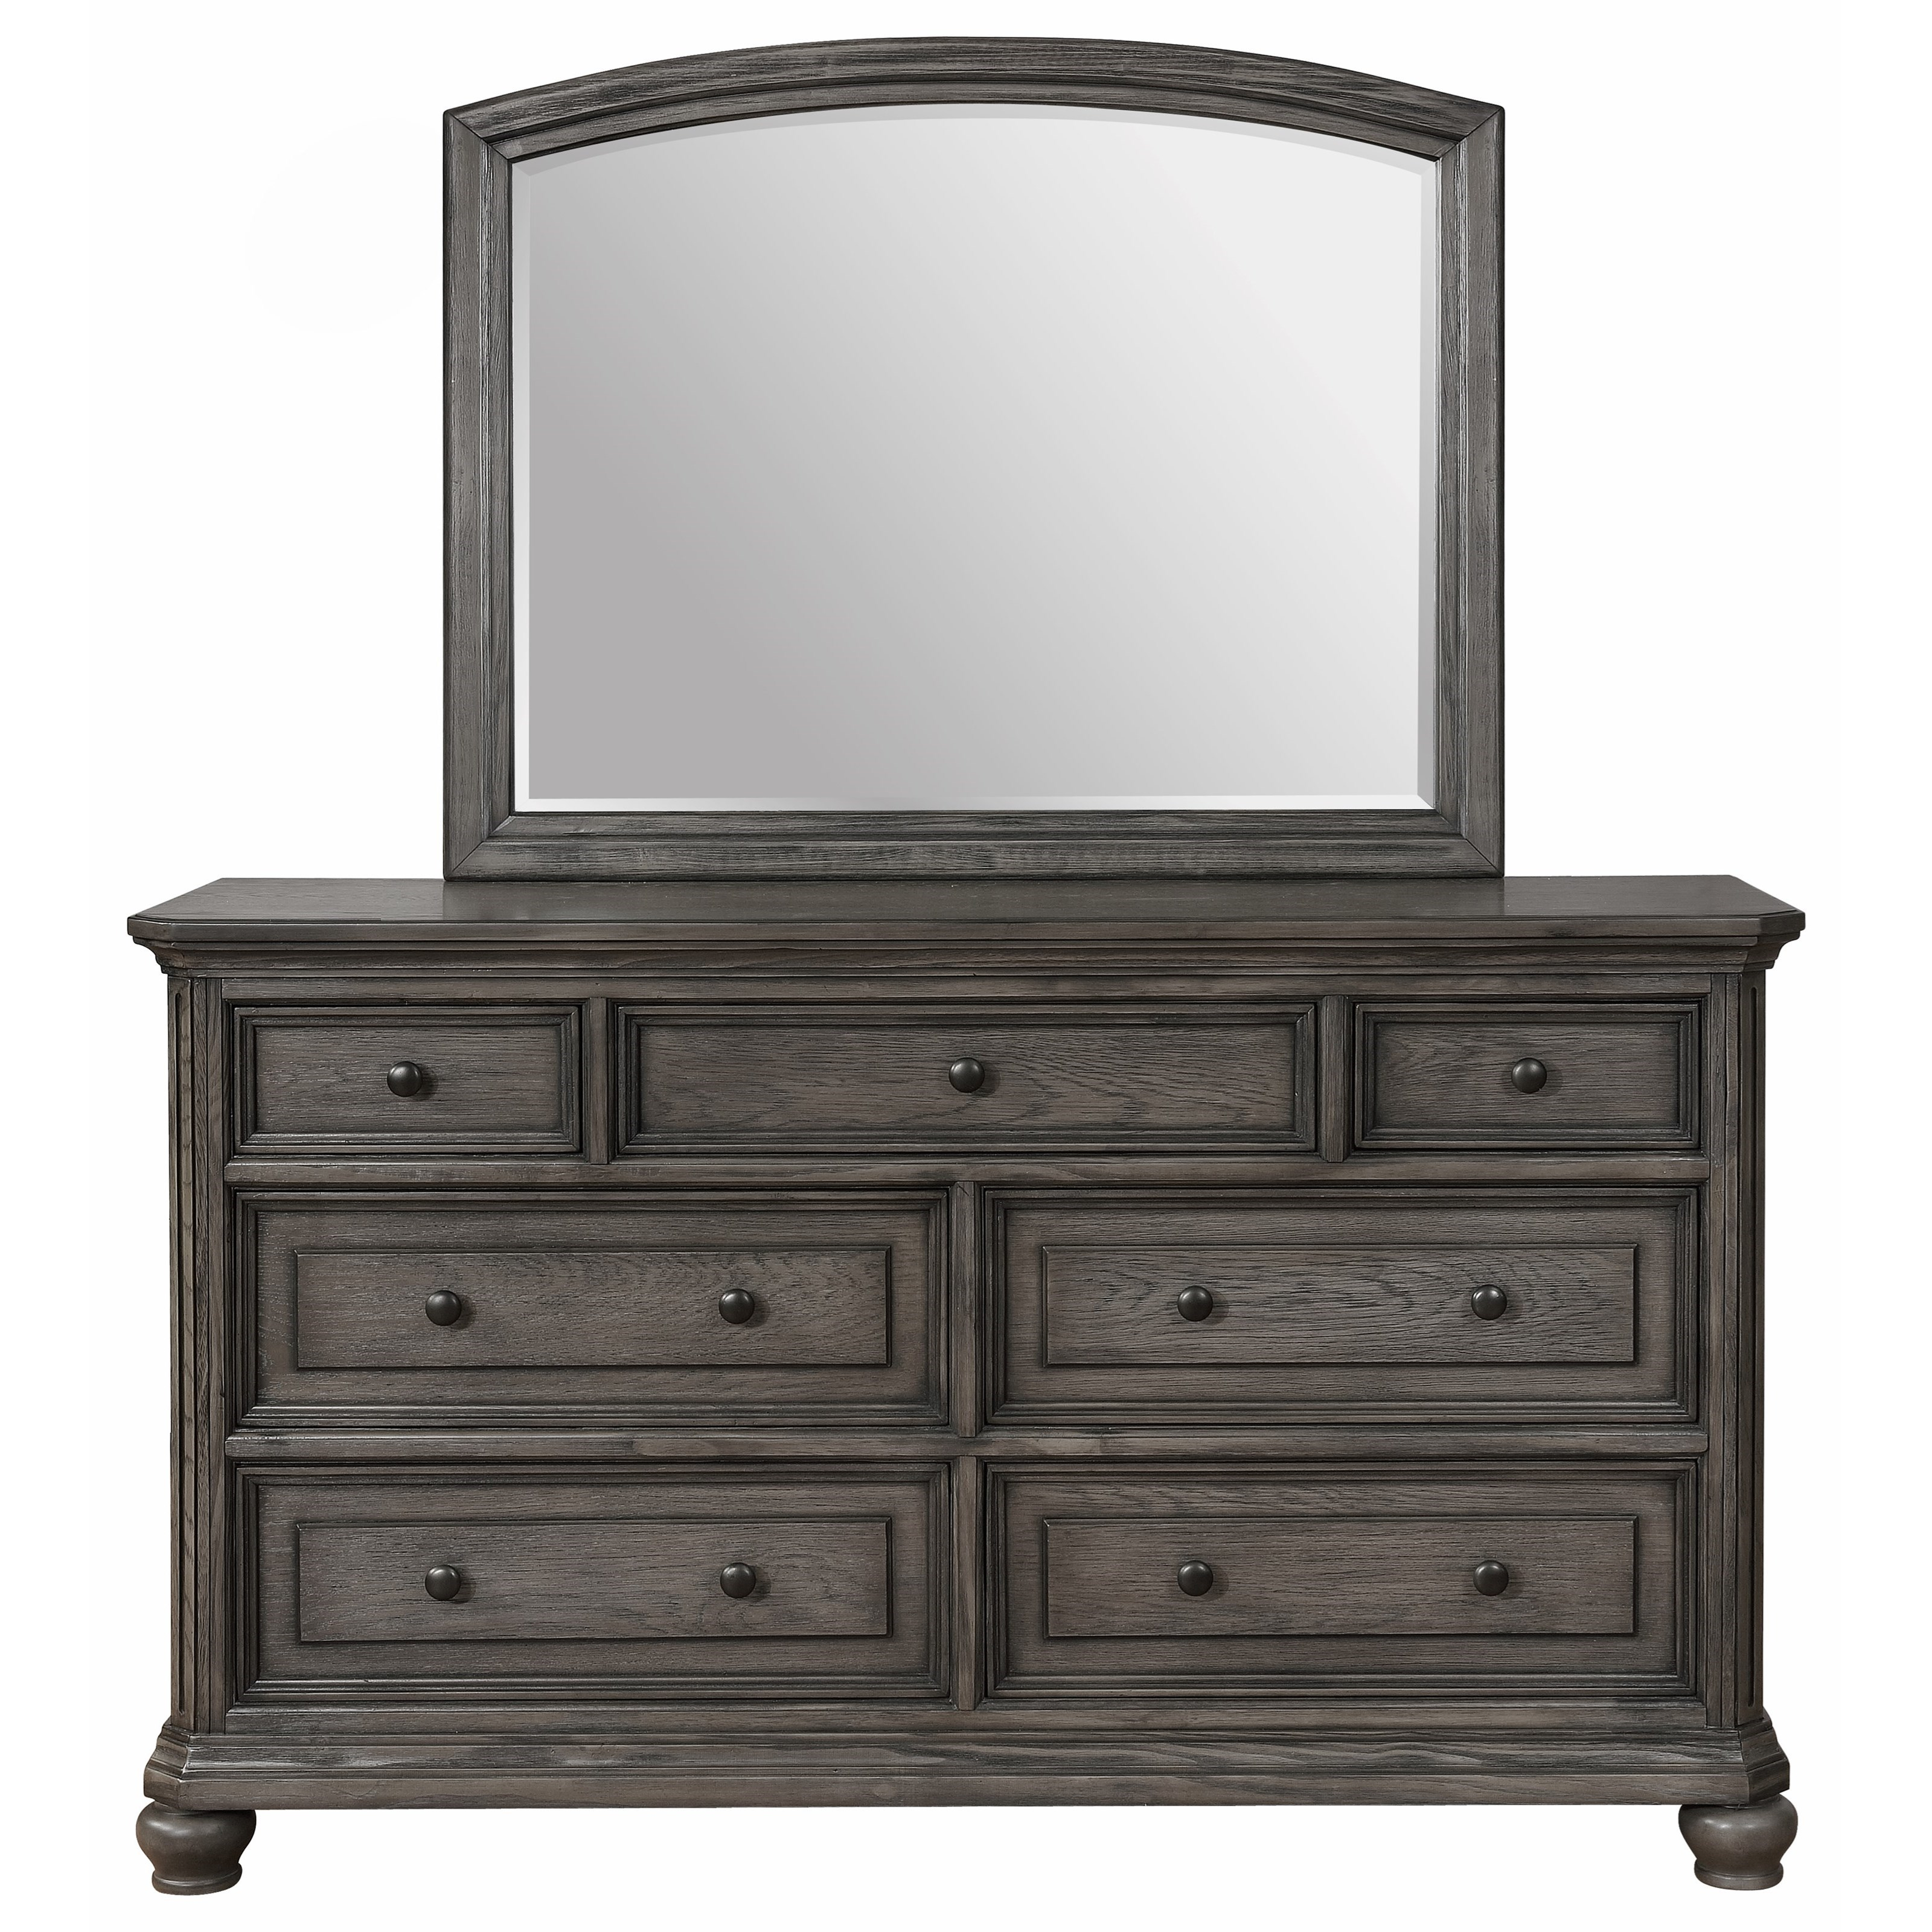 Lavonia Dresser and Mirror by Crown Mark at Northeast Factory Direct